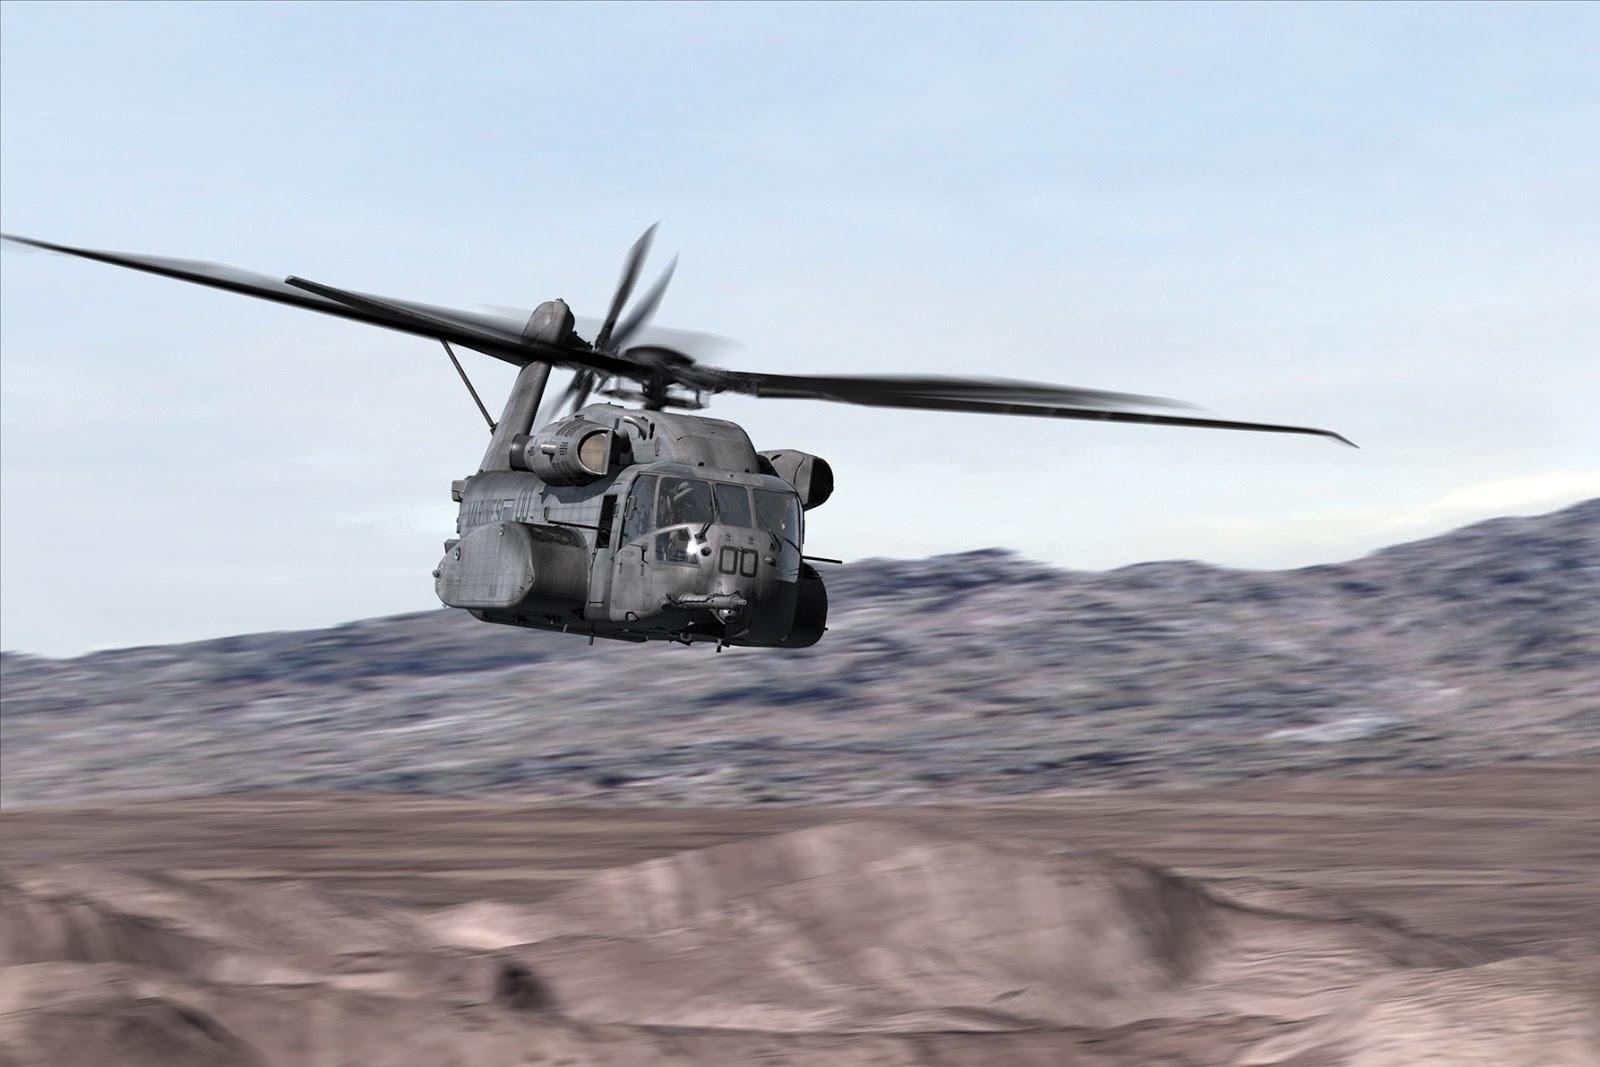 sikorsky helicopter with Ch 53k News First Flight Delayed on Watch in addition Heli  Aviation Adds Sikorsky Uh 60a Esss Black Hawk To Growing Fleet additionally Sikorsky S 76 03 further Ch 53k News First Flight Delayed besides Lhelicoptere Mi 24 Cree La Panique Chez Les Rebelles En Syrie.